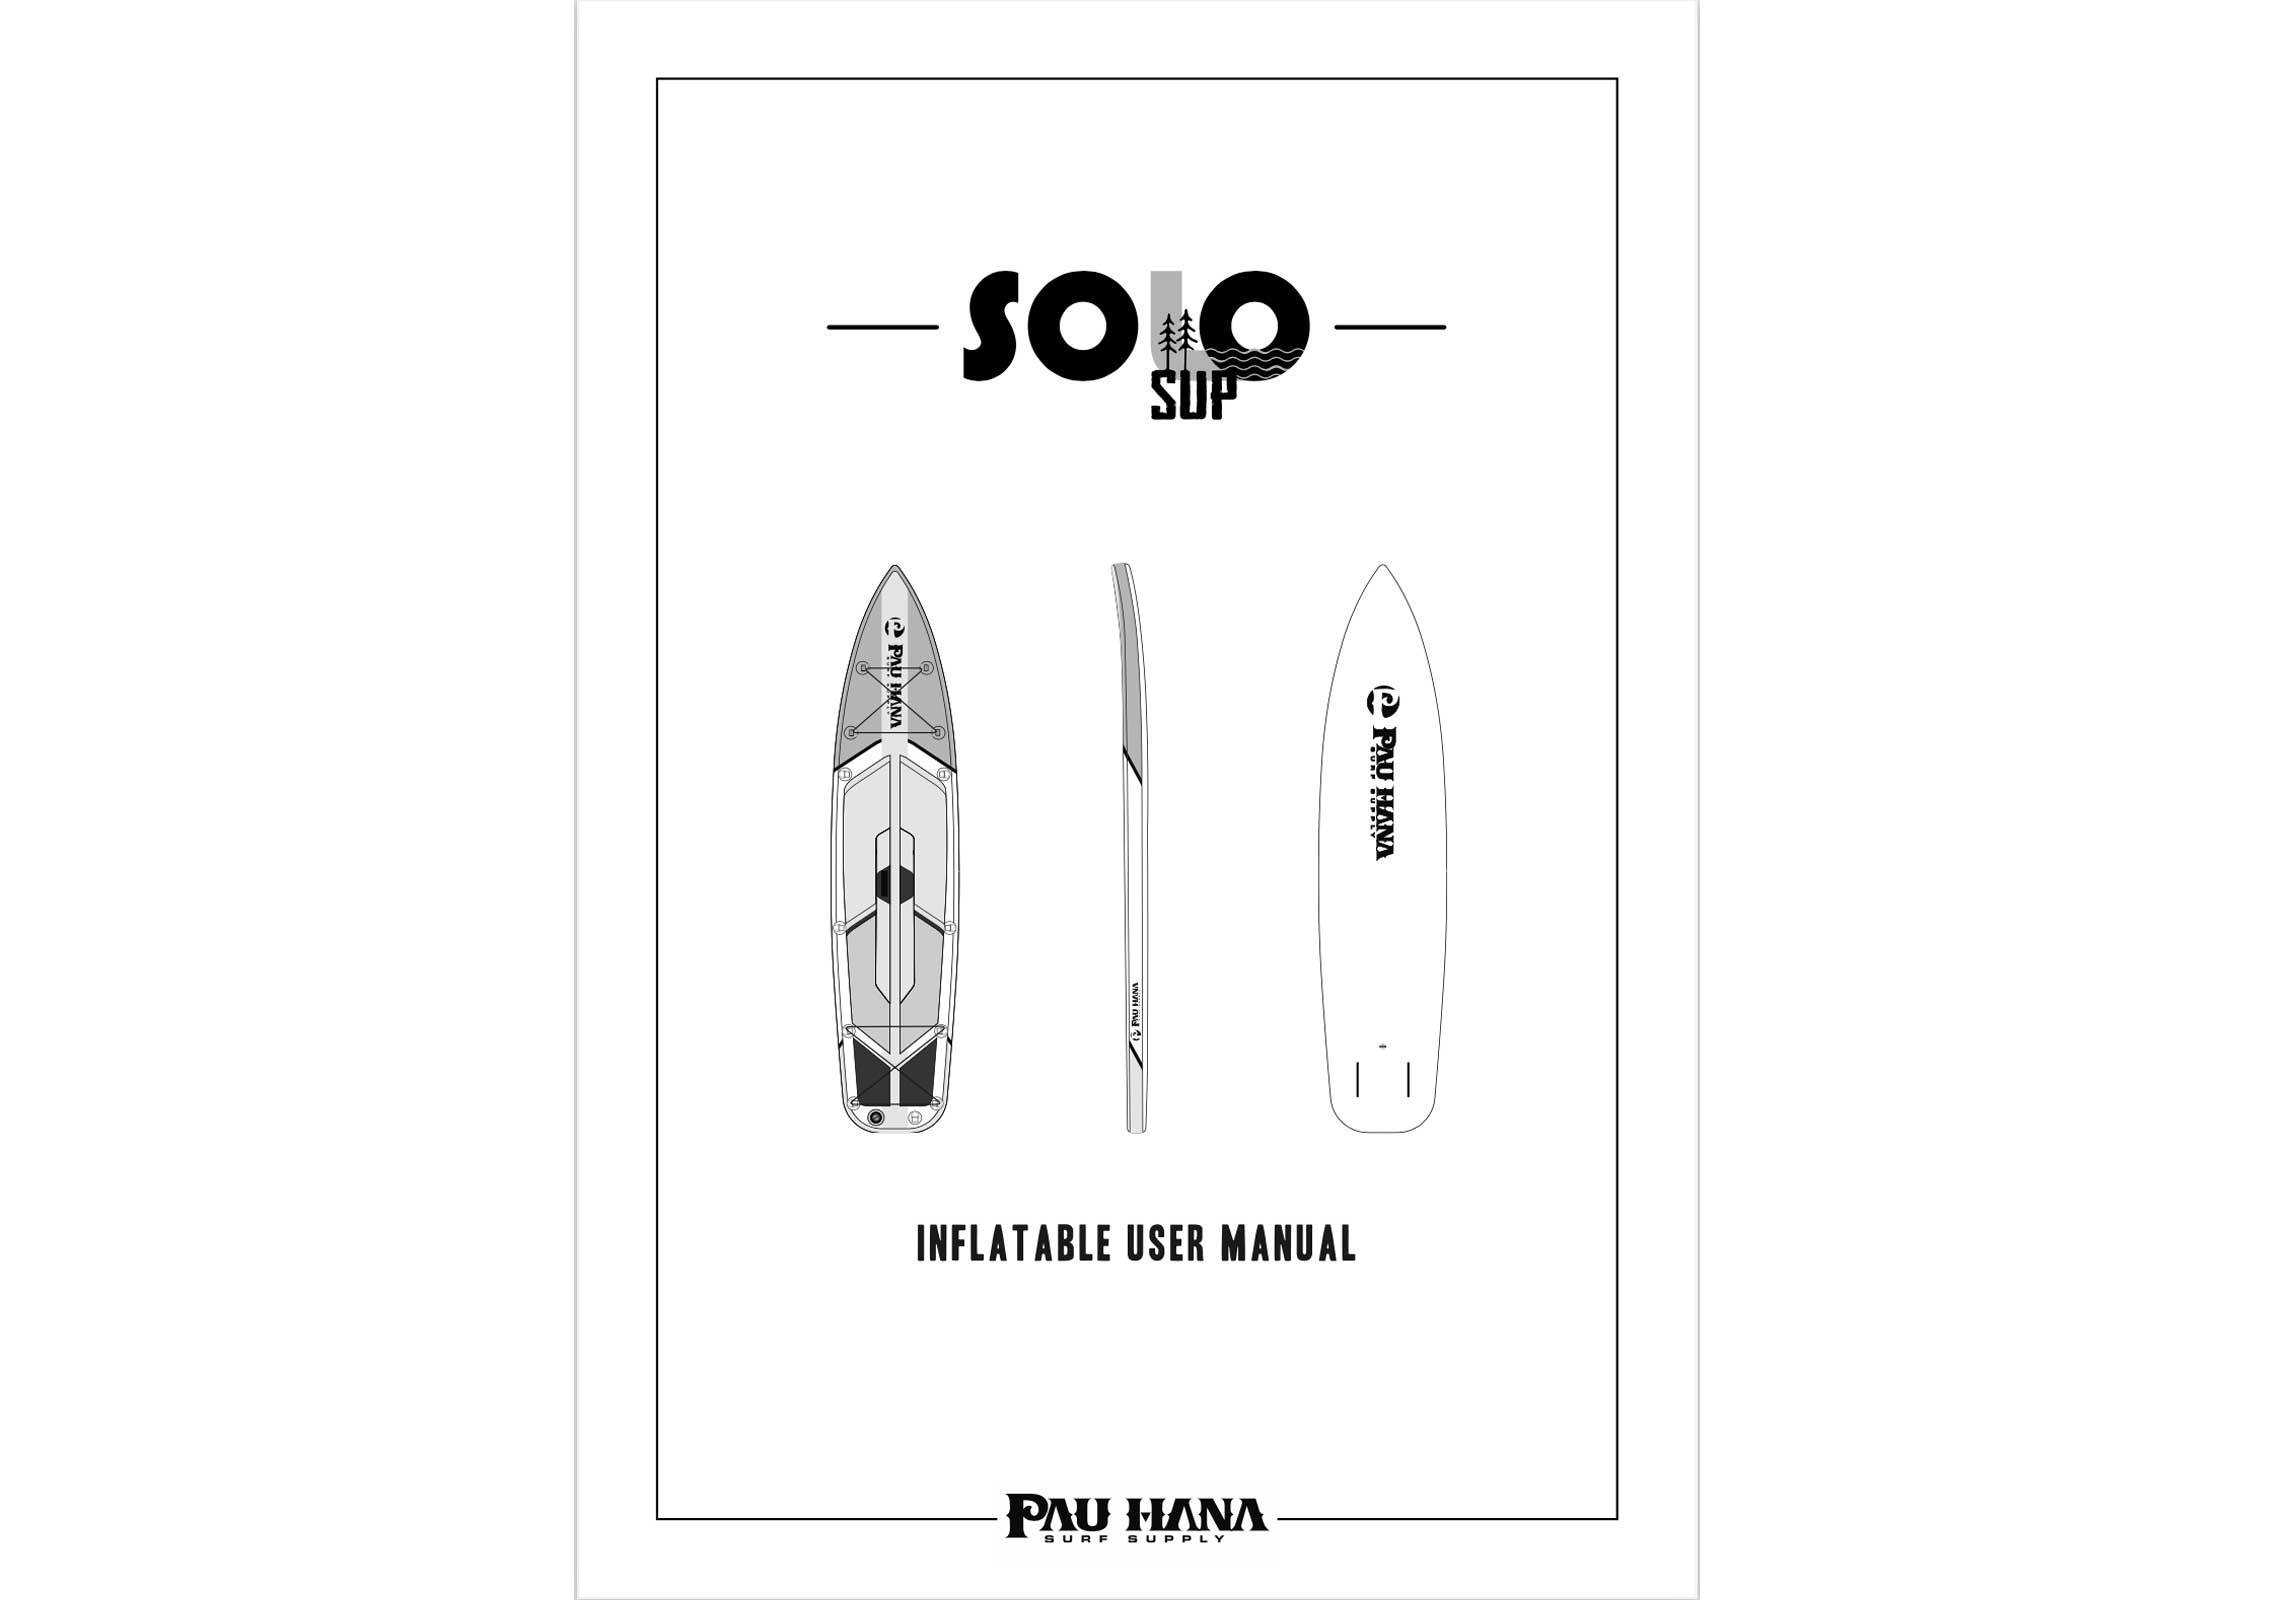 pau hana Solo SUP Backcountry inflatable stand up paddle board user manual page 1